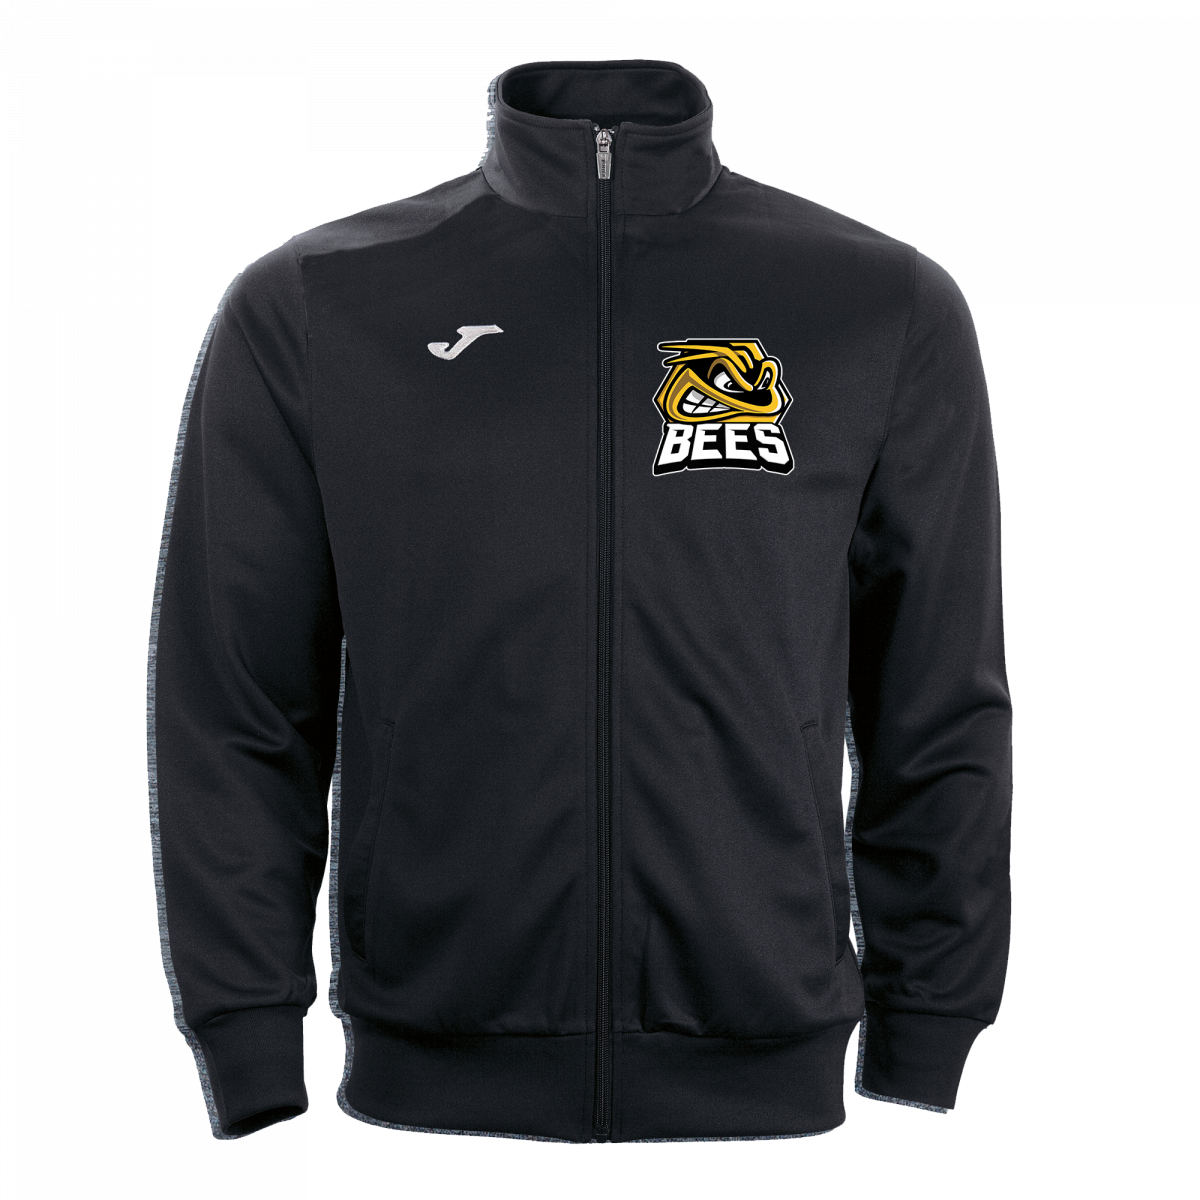 BEES TRACK TOP BLACK